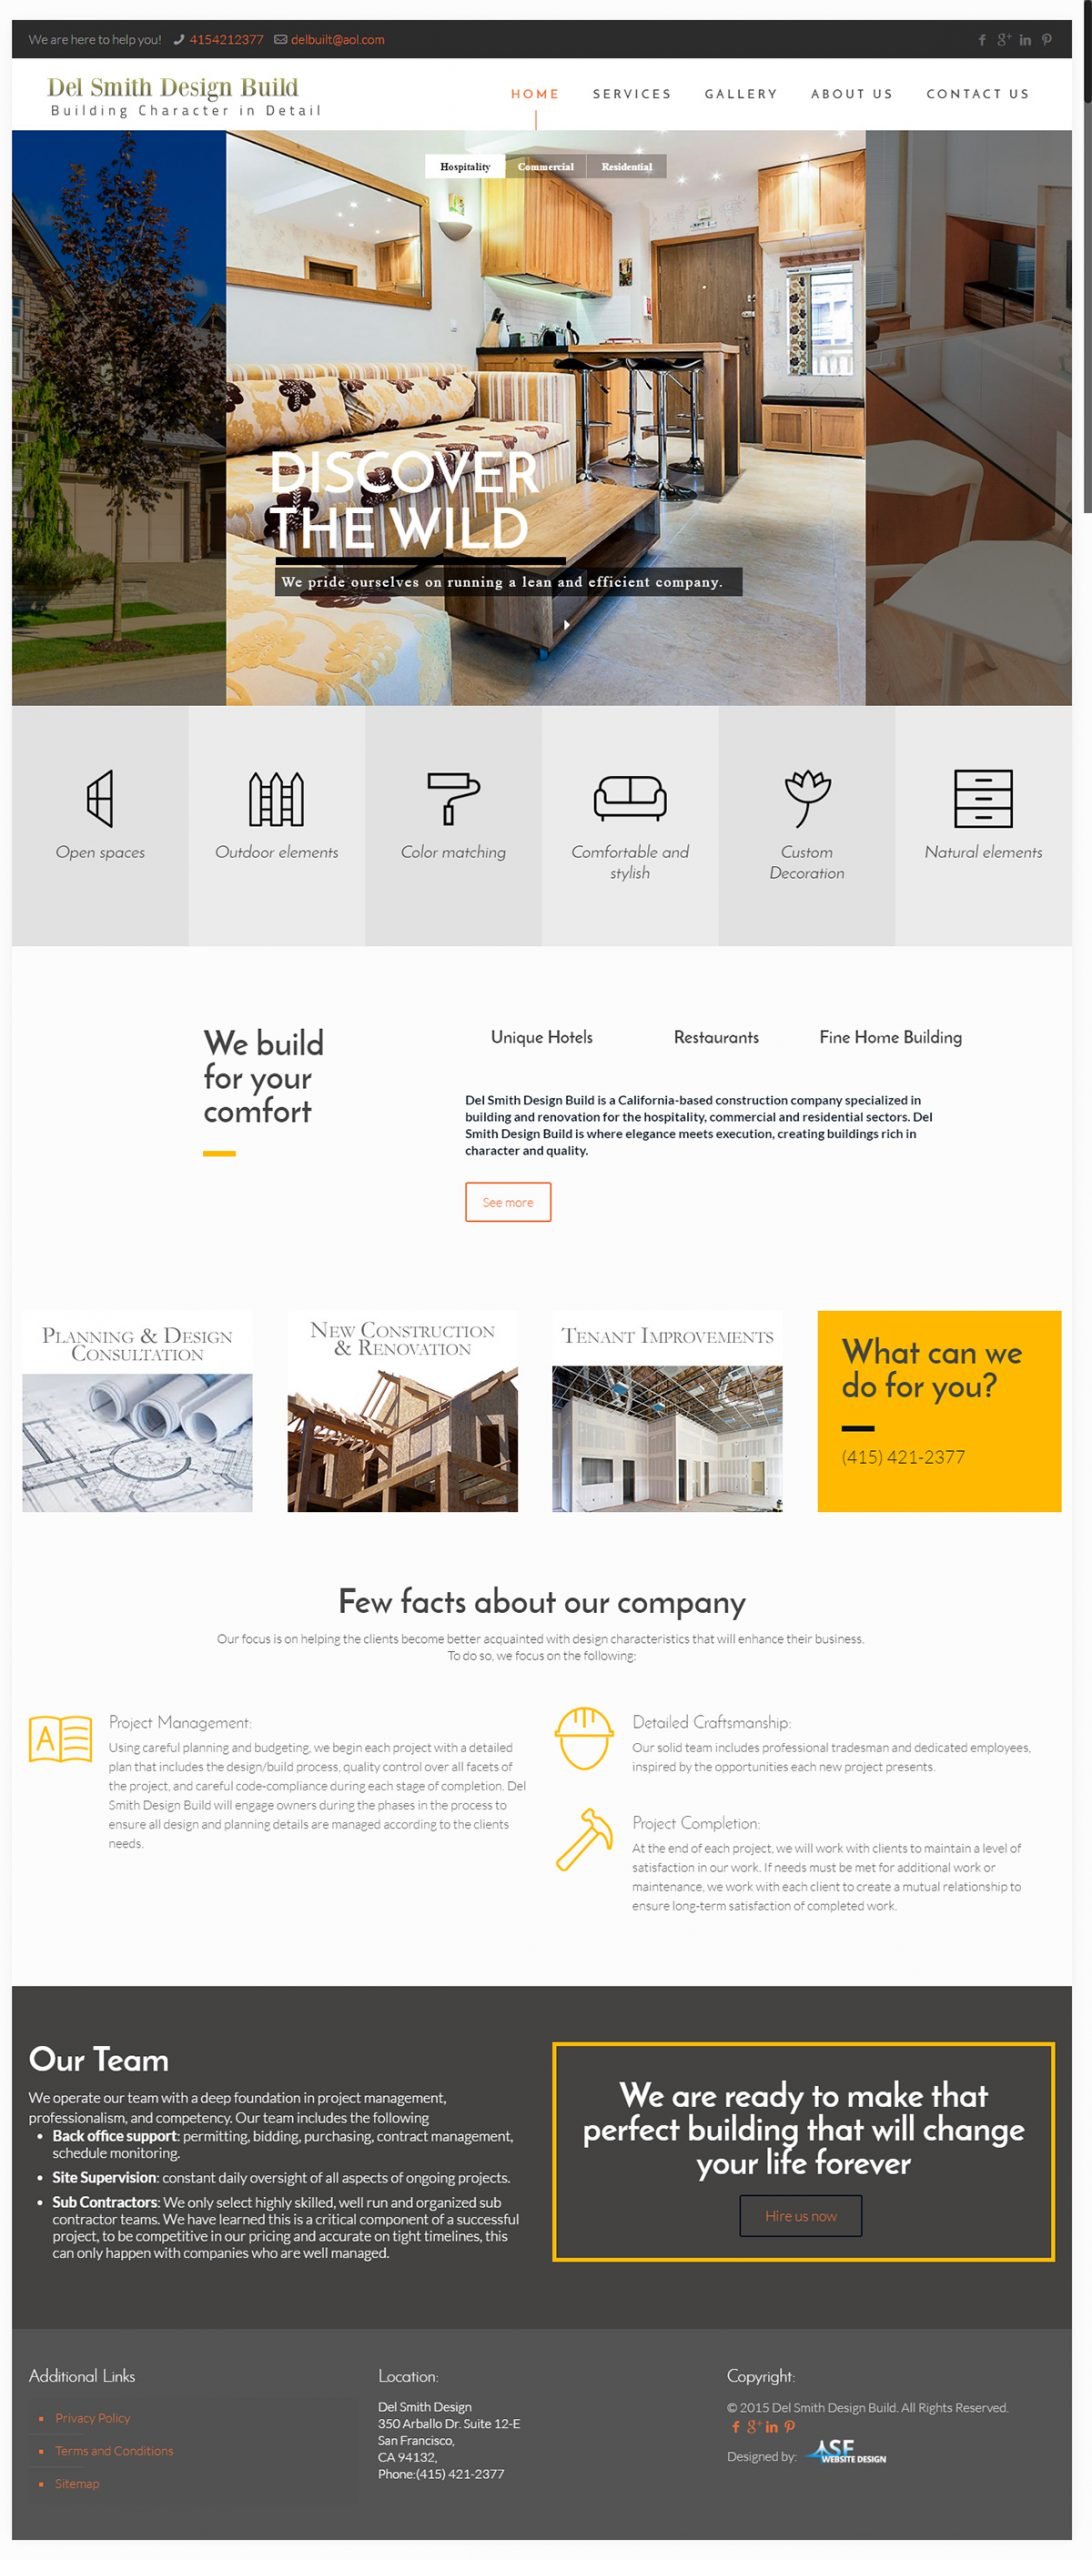 AGH Realty Group – Website Design for Real Estate Company